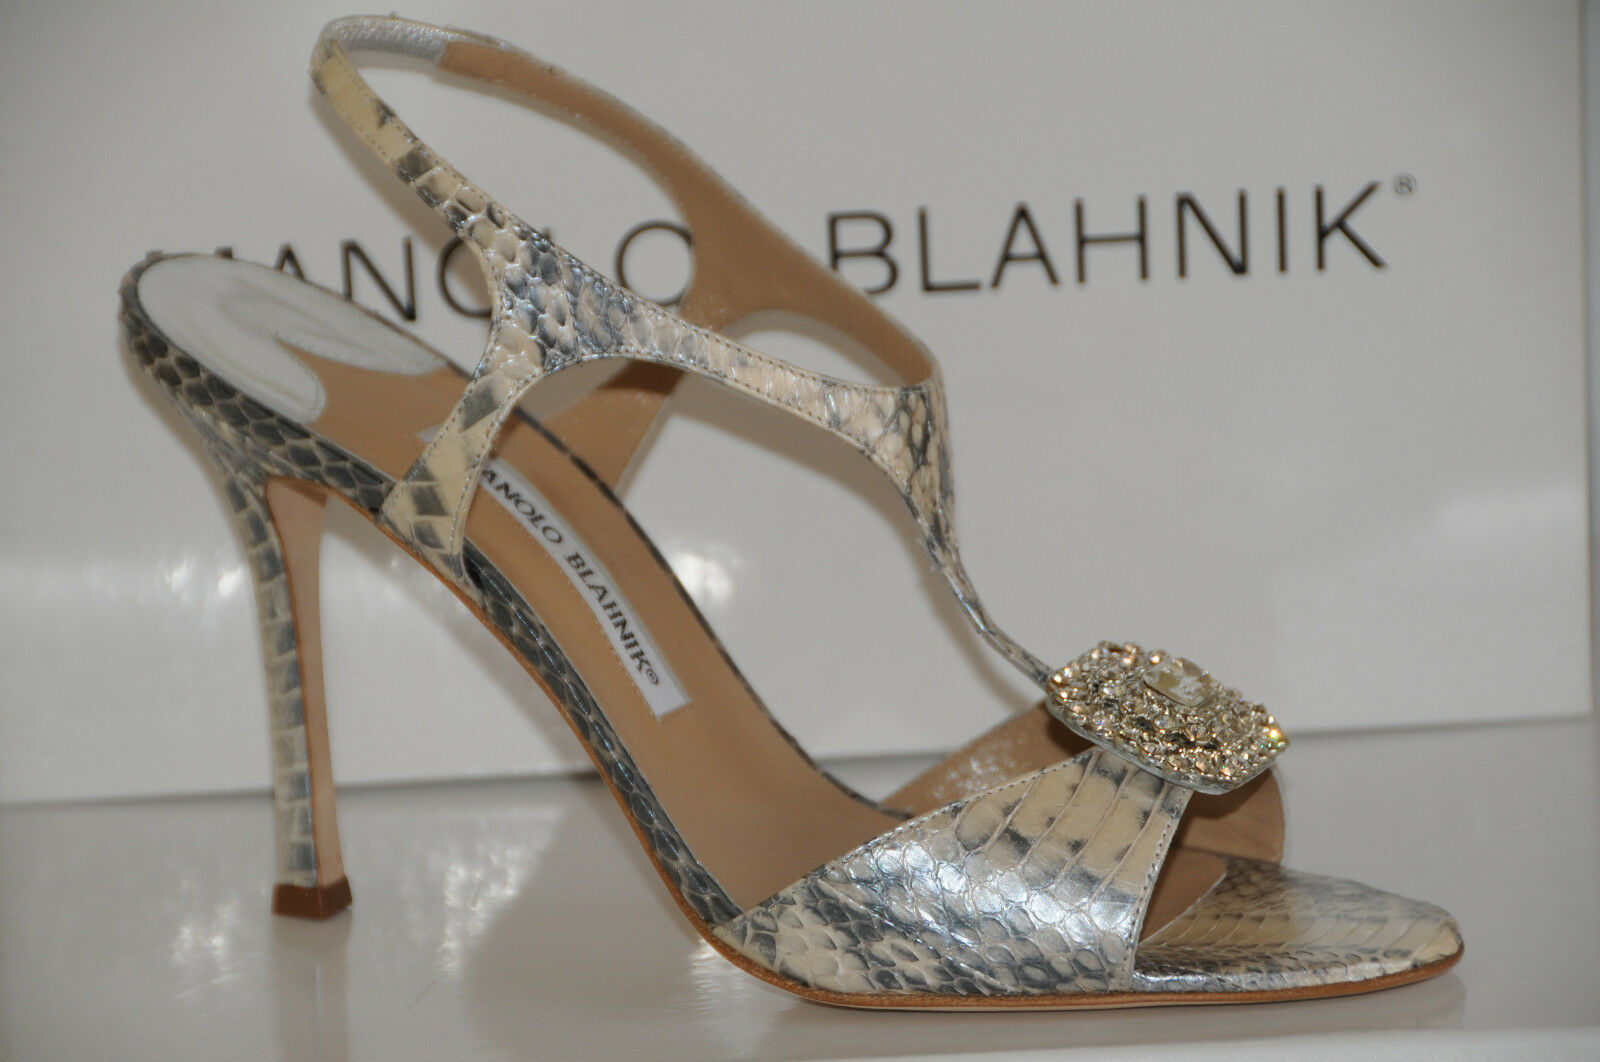 New Snake Manolo Blahnik Krusostrel Argento Snake New SKINS Jeweled Shoes Sandals 40.5 fc0bbe